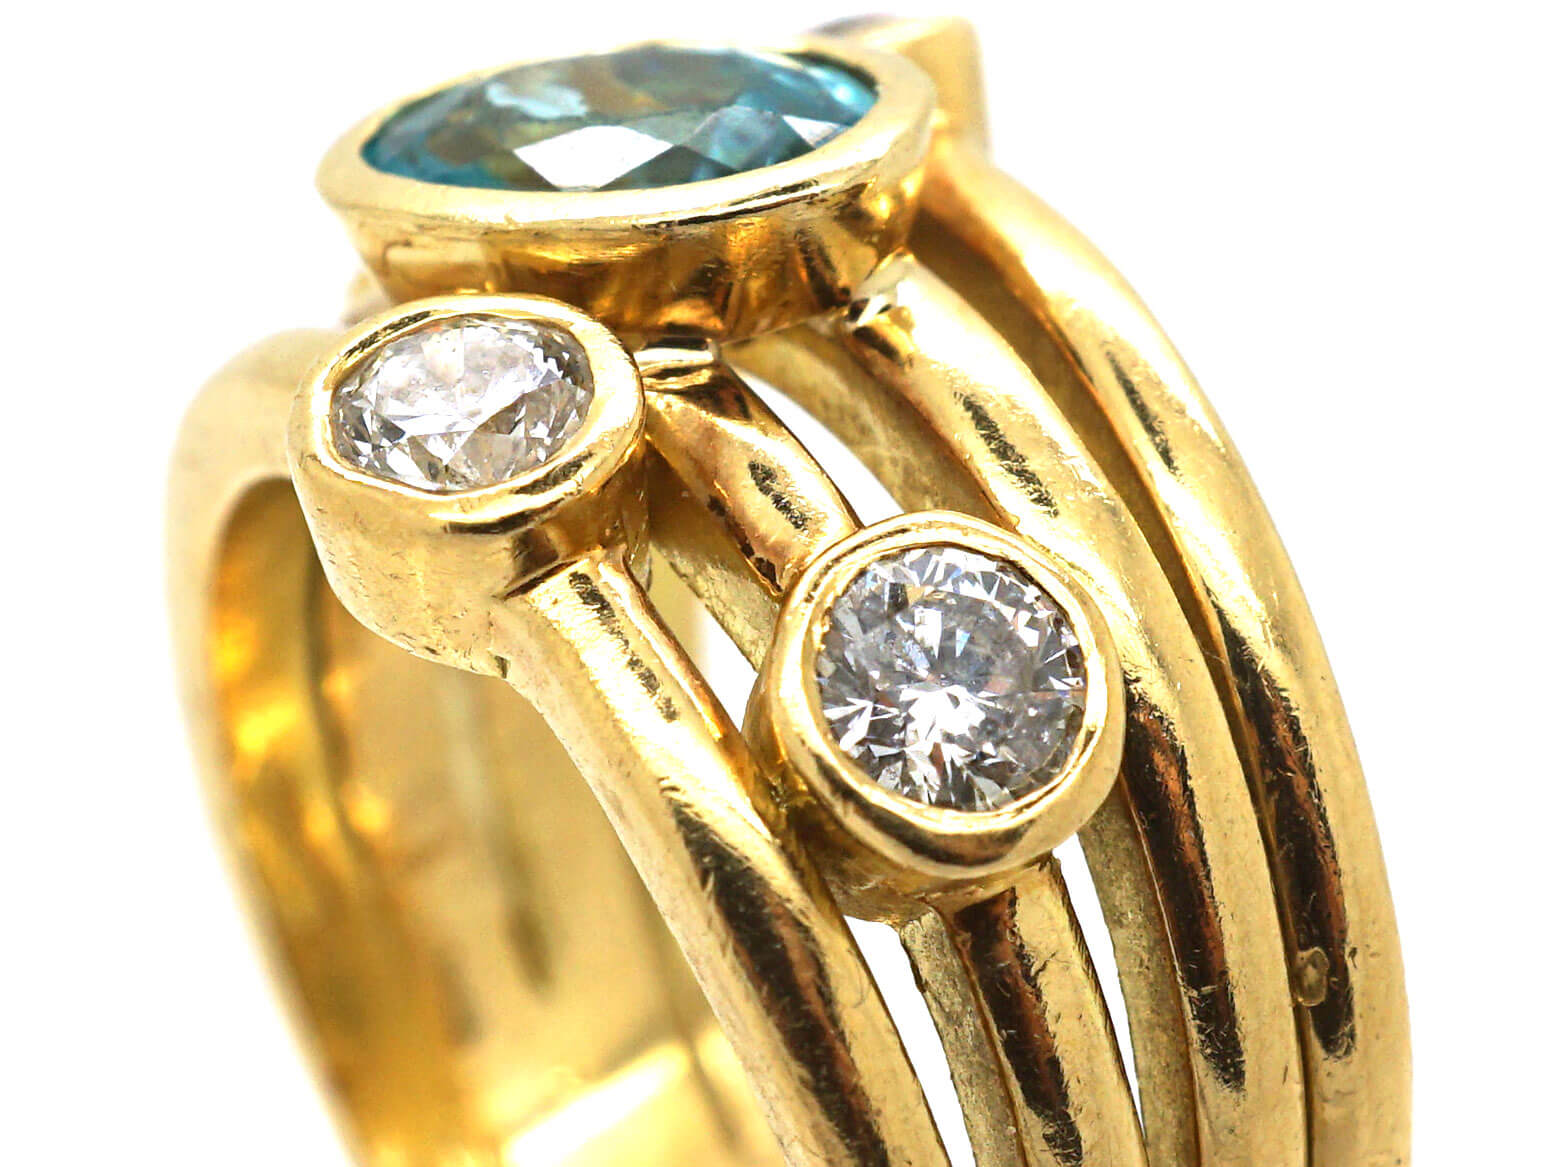 18ct Gold Aquamarine & Diamond Ring from the Raindance Collection by Boodles